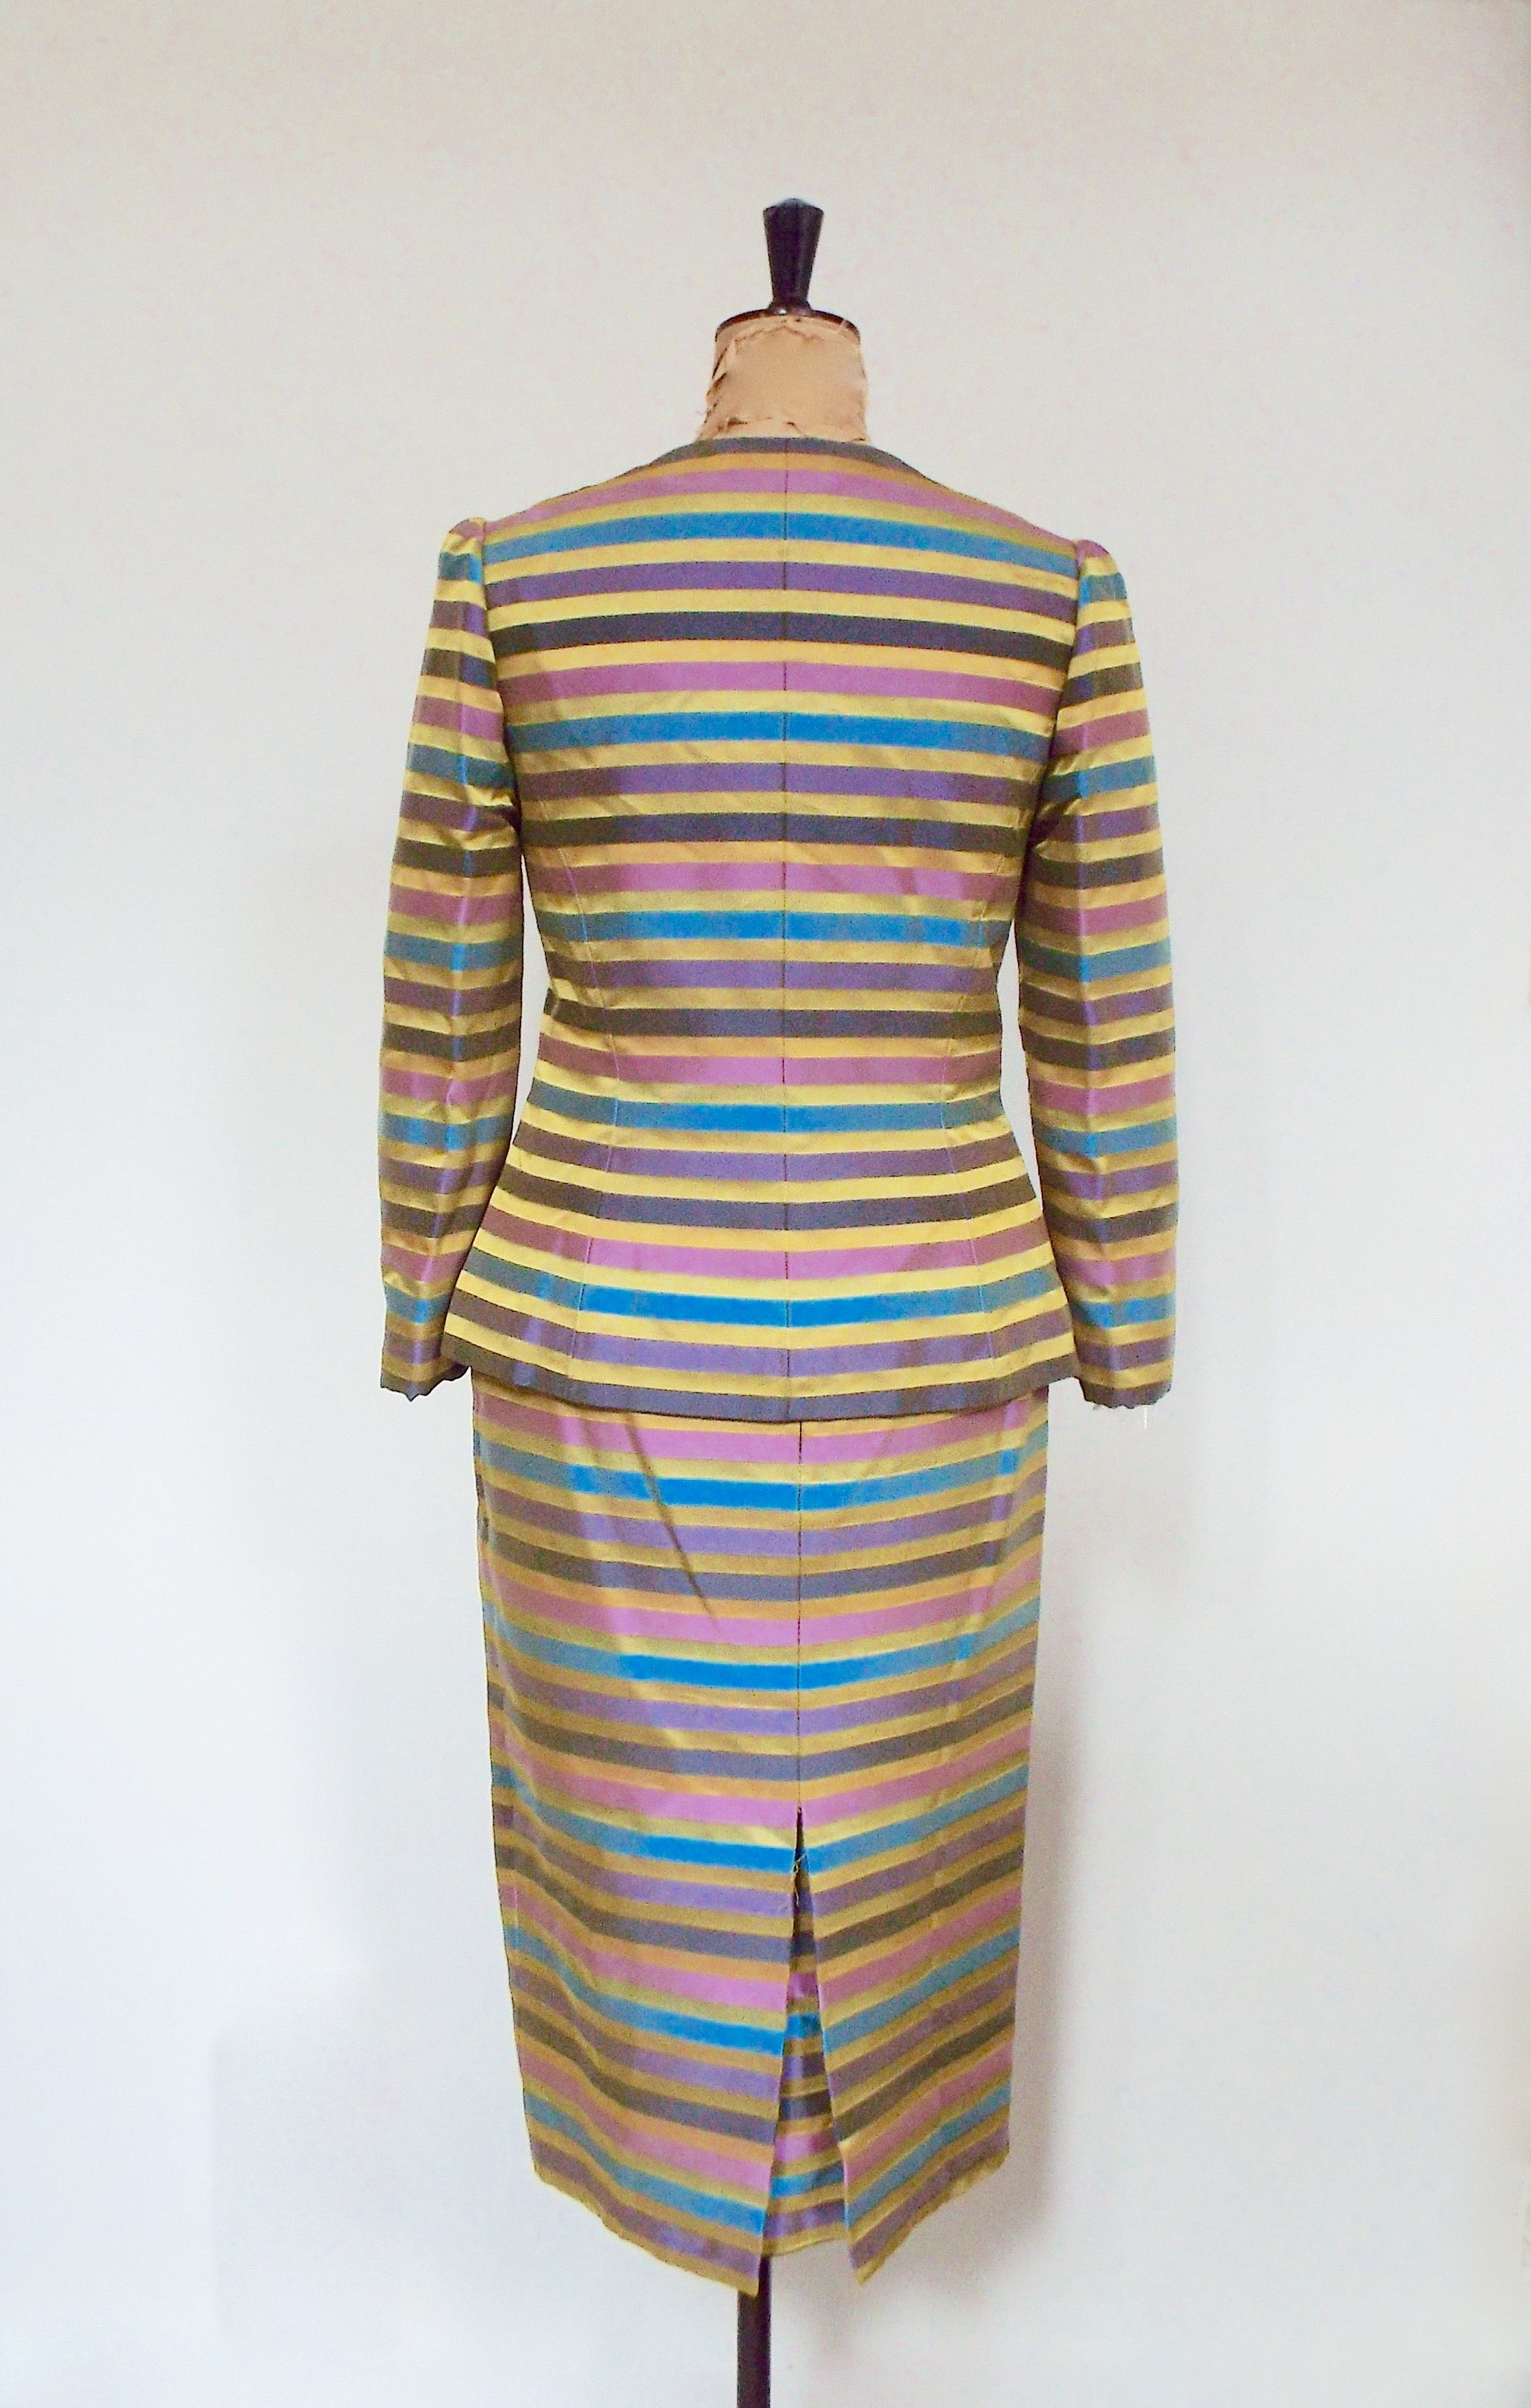 Vintage Ib Jorgensen Couture Silk Suit Size UK 12